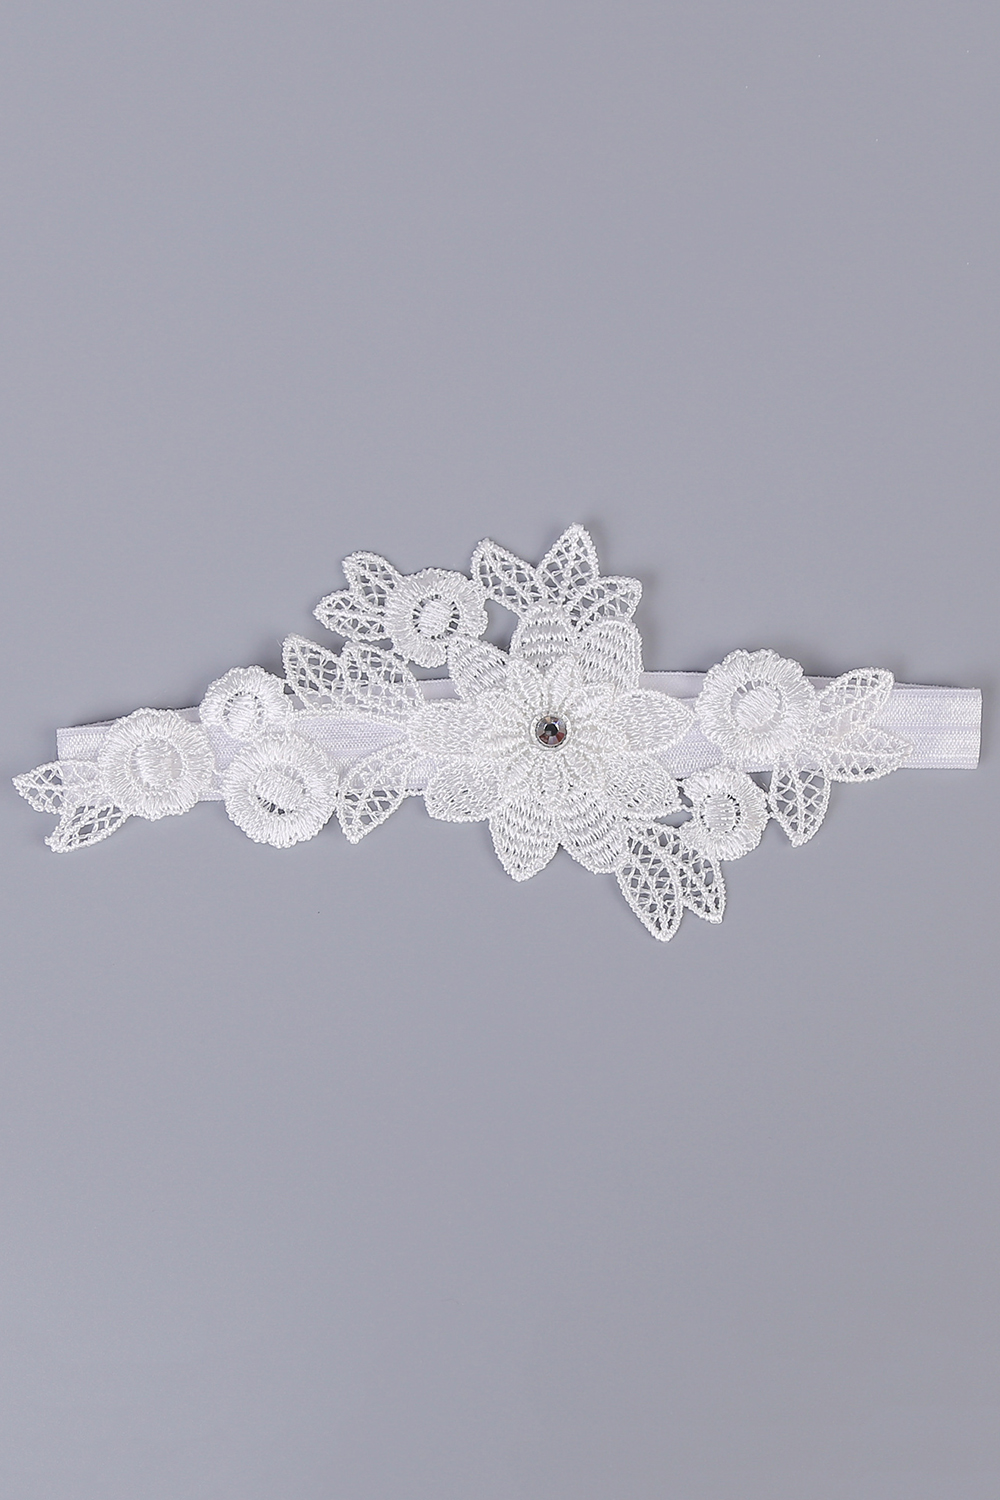 Fast Deliver Wedding Gloves 2018 Hot-selling Vintage Lace Bridal Leg Garter With Blue Rhinestones Ivory Appliques Wedding Accessories Fi034 Weddings & Events Bridal Gloves